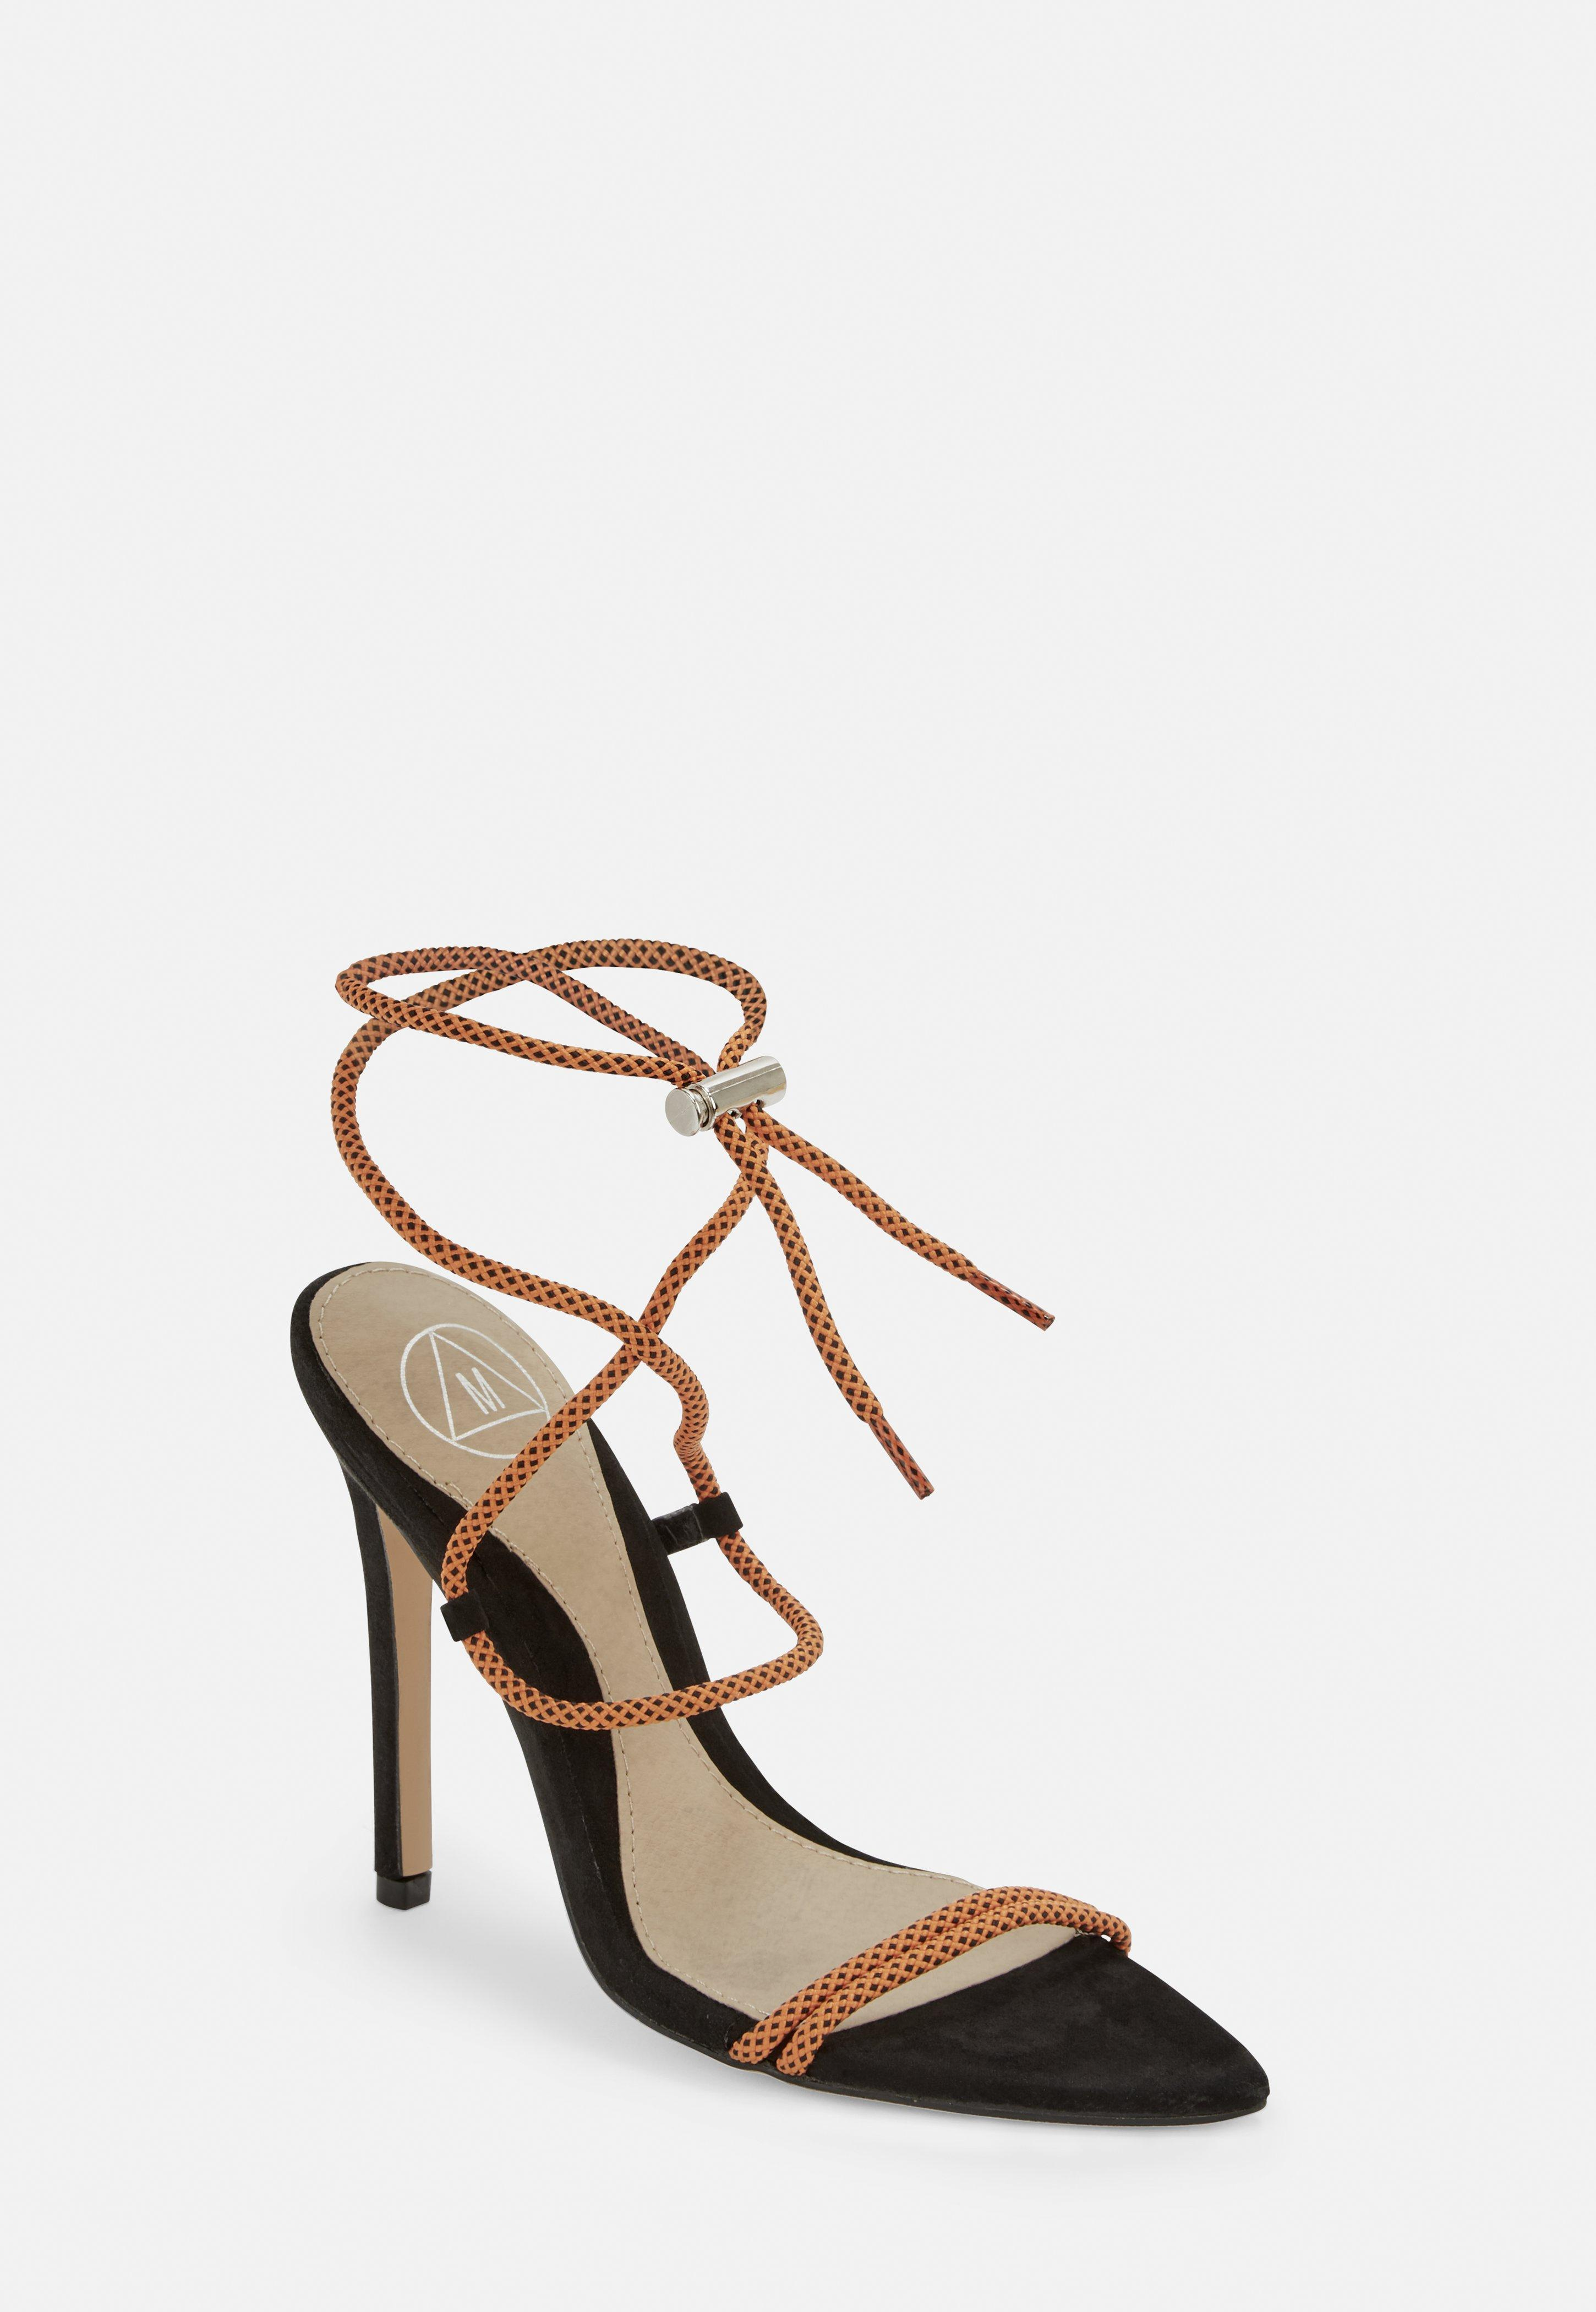 25a85fcd4c9 Lyst - Missguided Orange Rope Pointed Toe Heeled Sandals in Orange